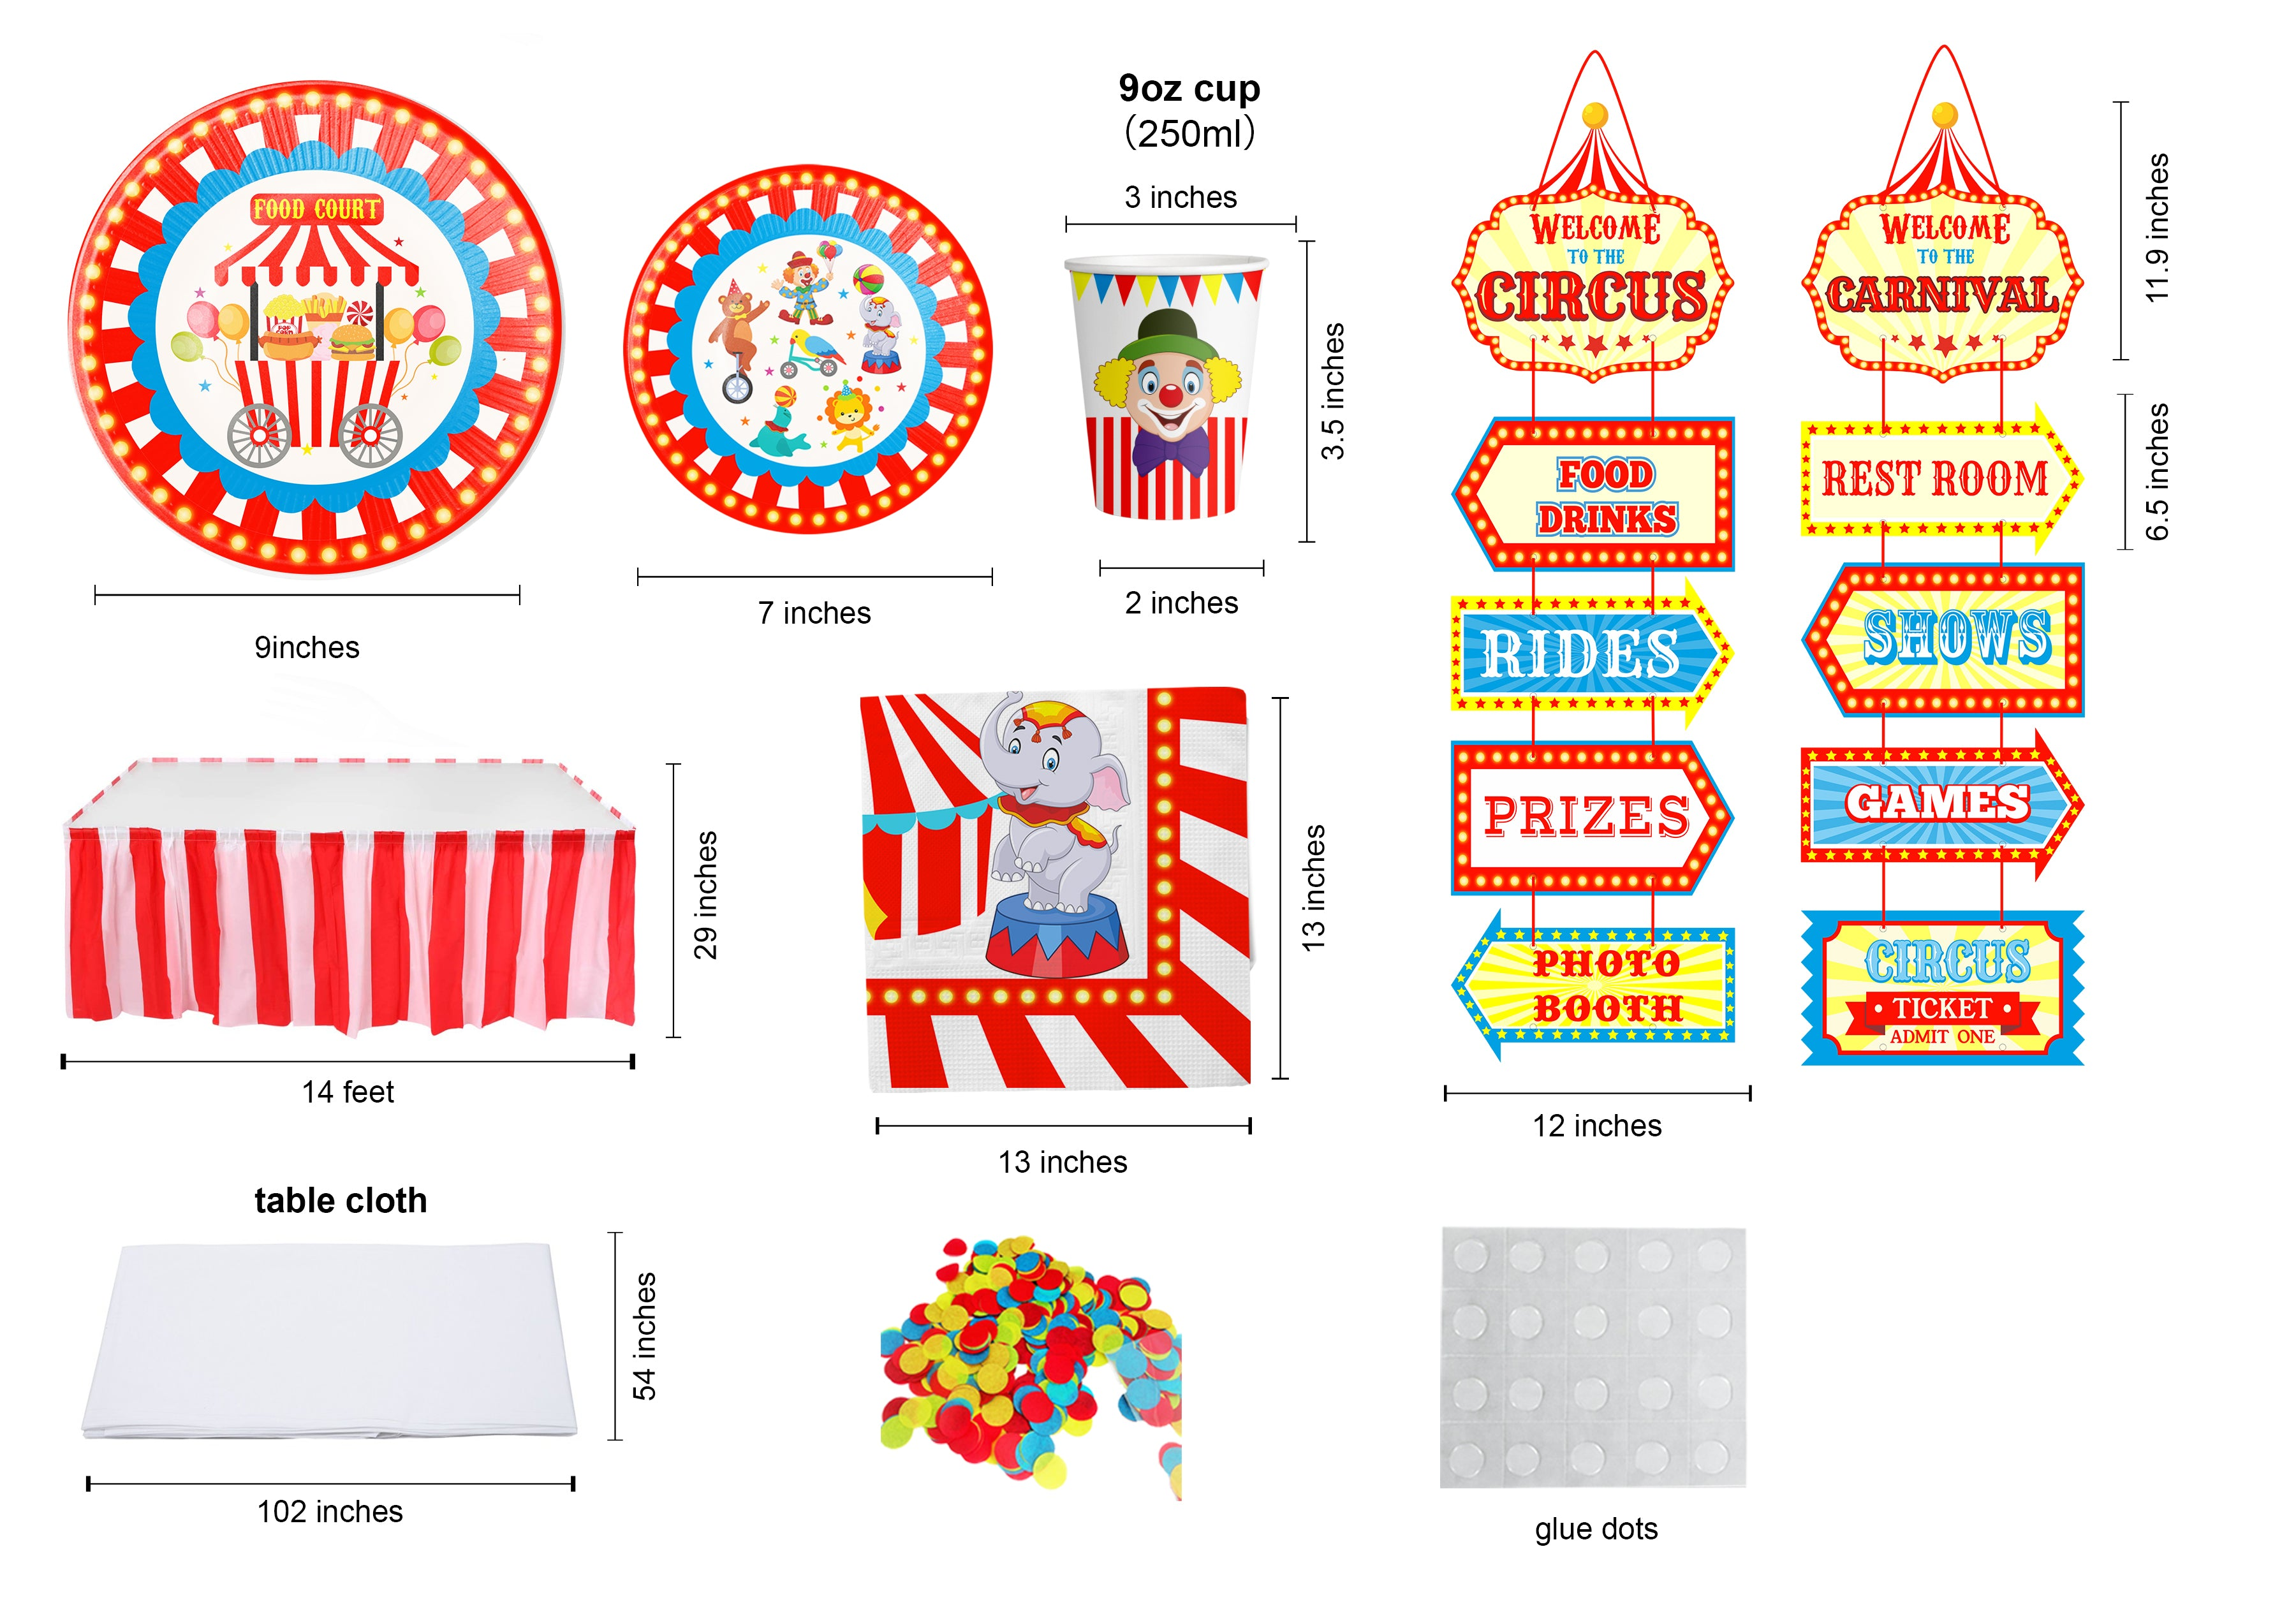 Carnival Circus party theme. plates, banners, cake toppers, invitations, birthday decorations | OrangeDolly USA